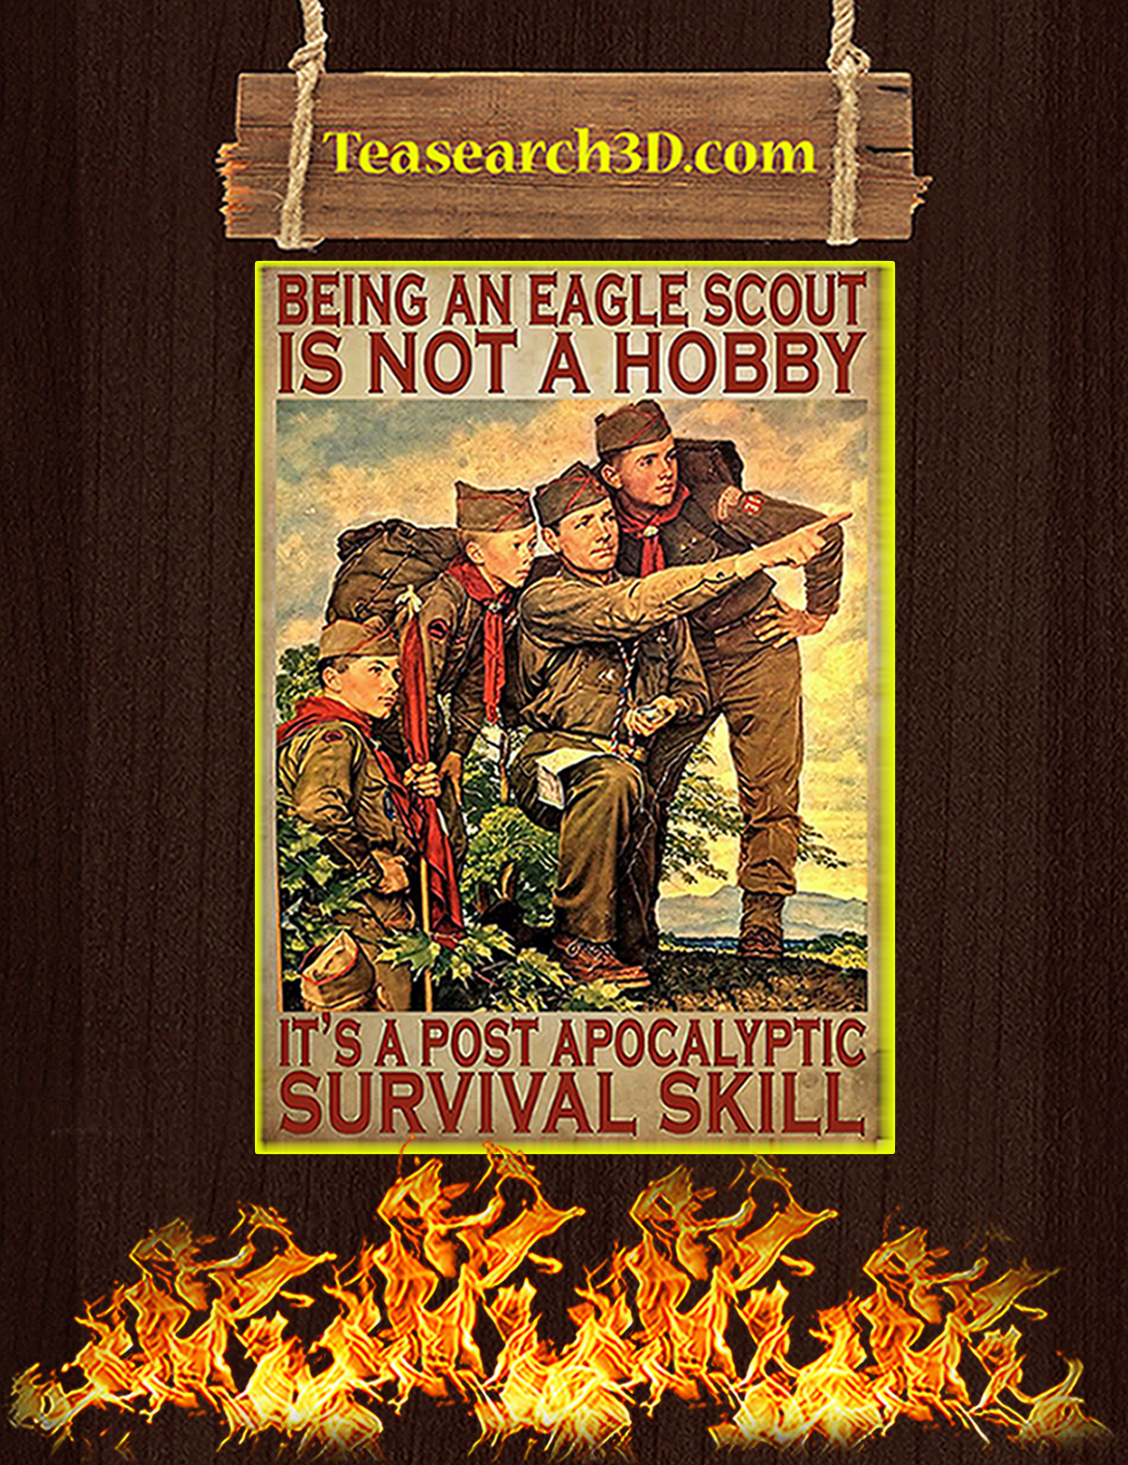 Being an eagle scout is not a hobby poster A3